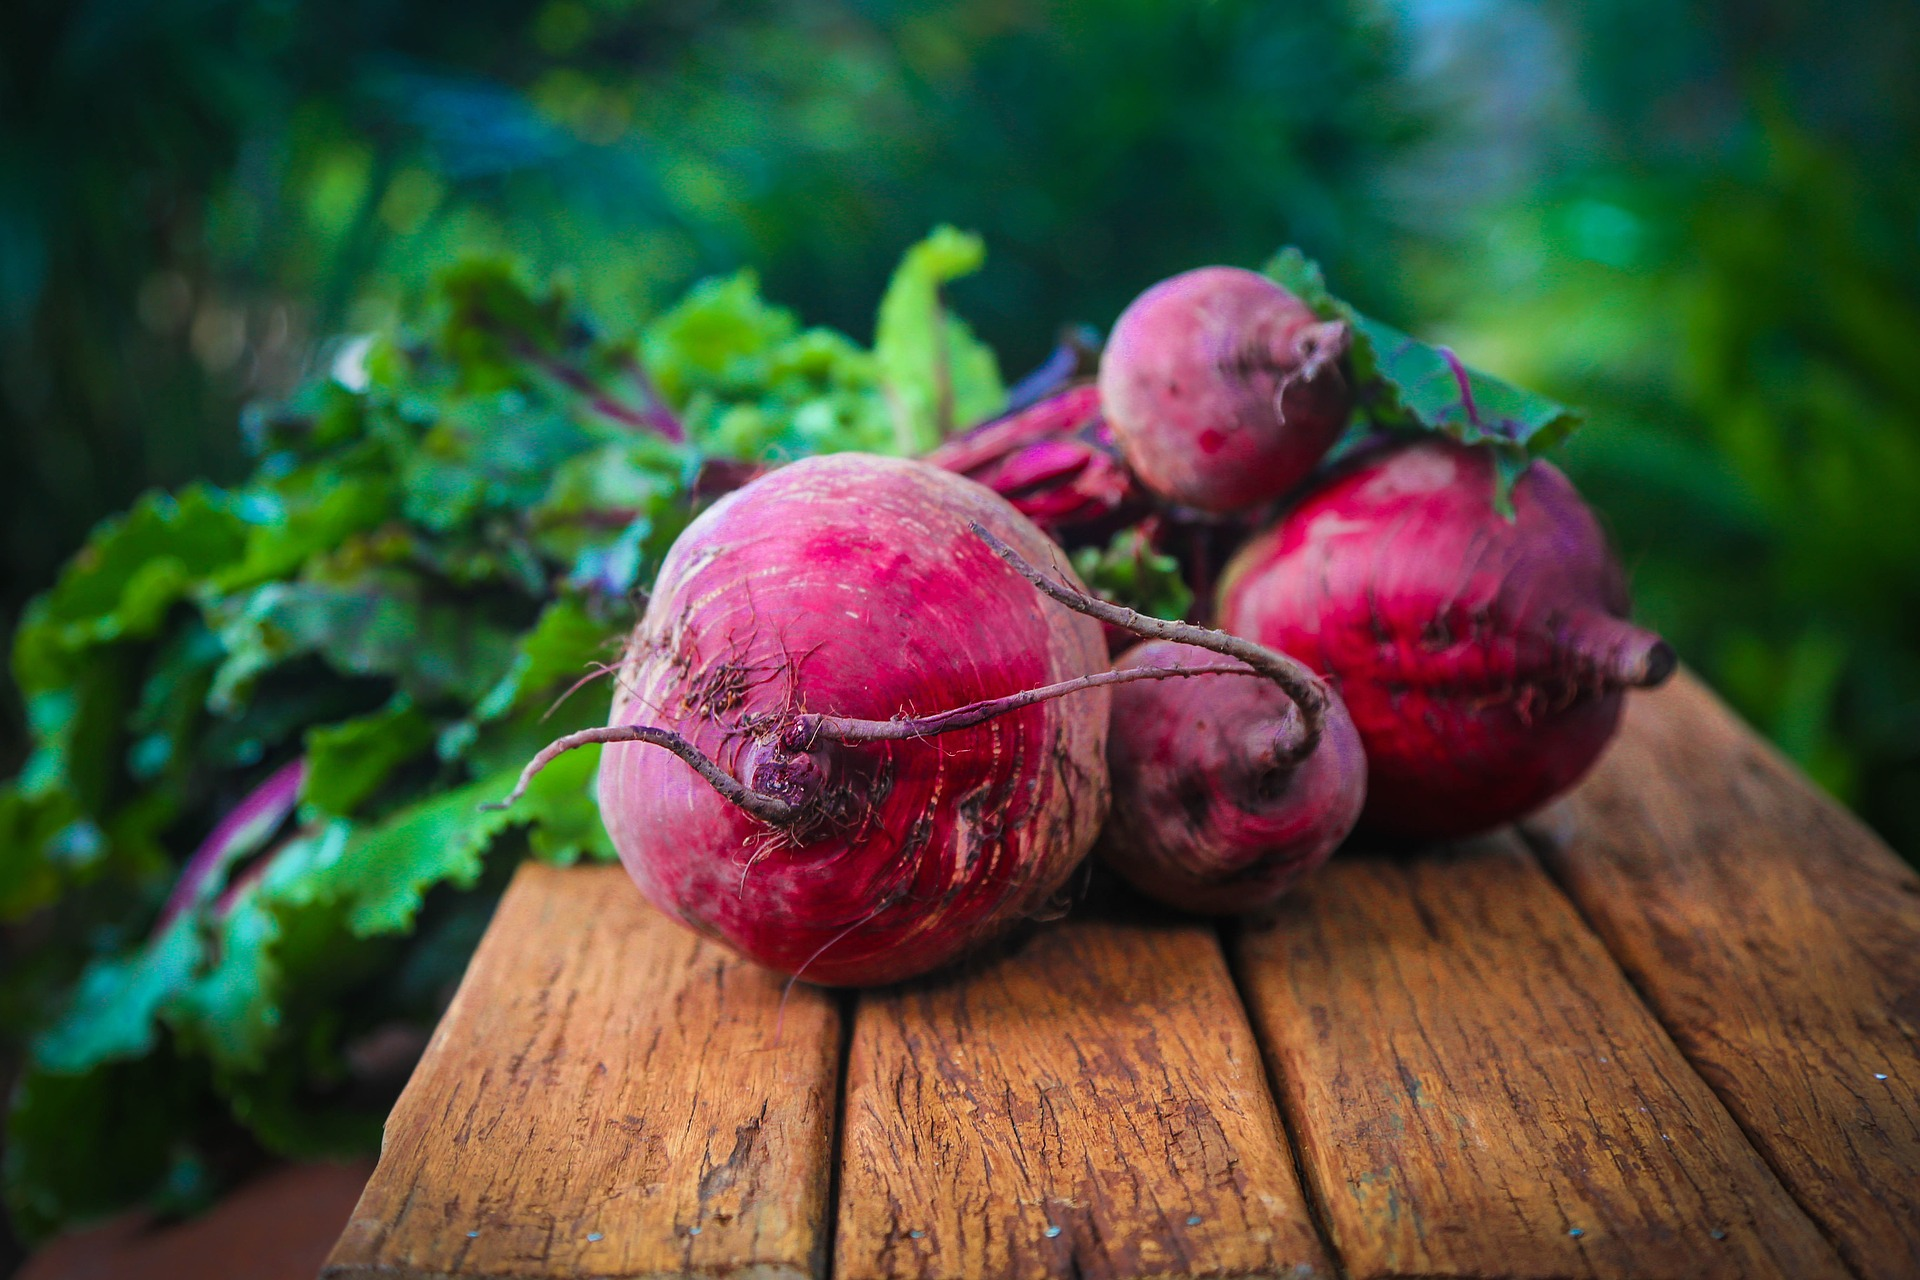 beetroot-knolle